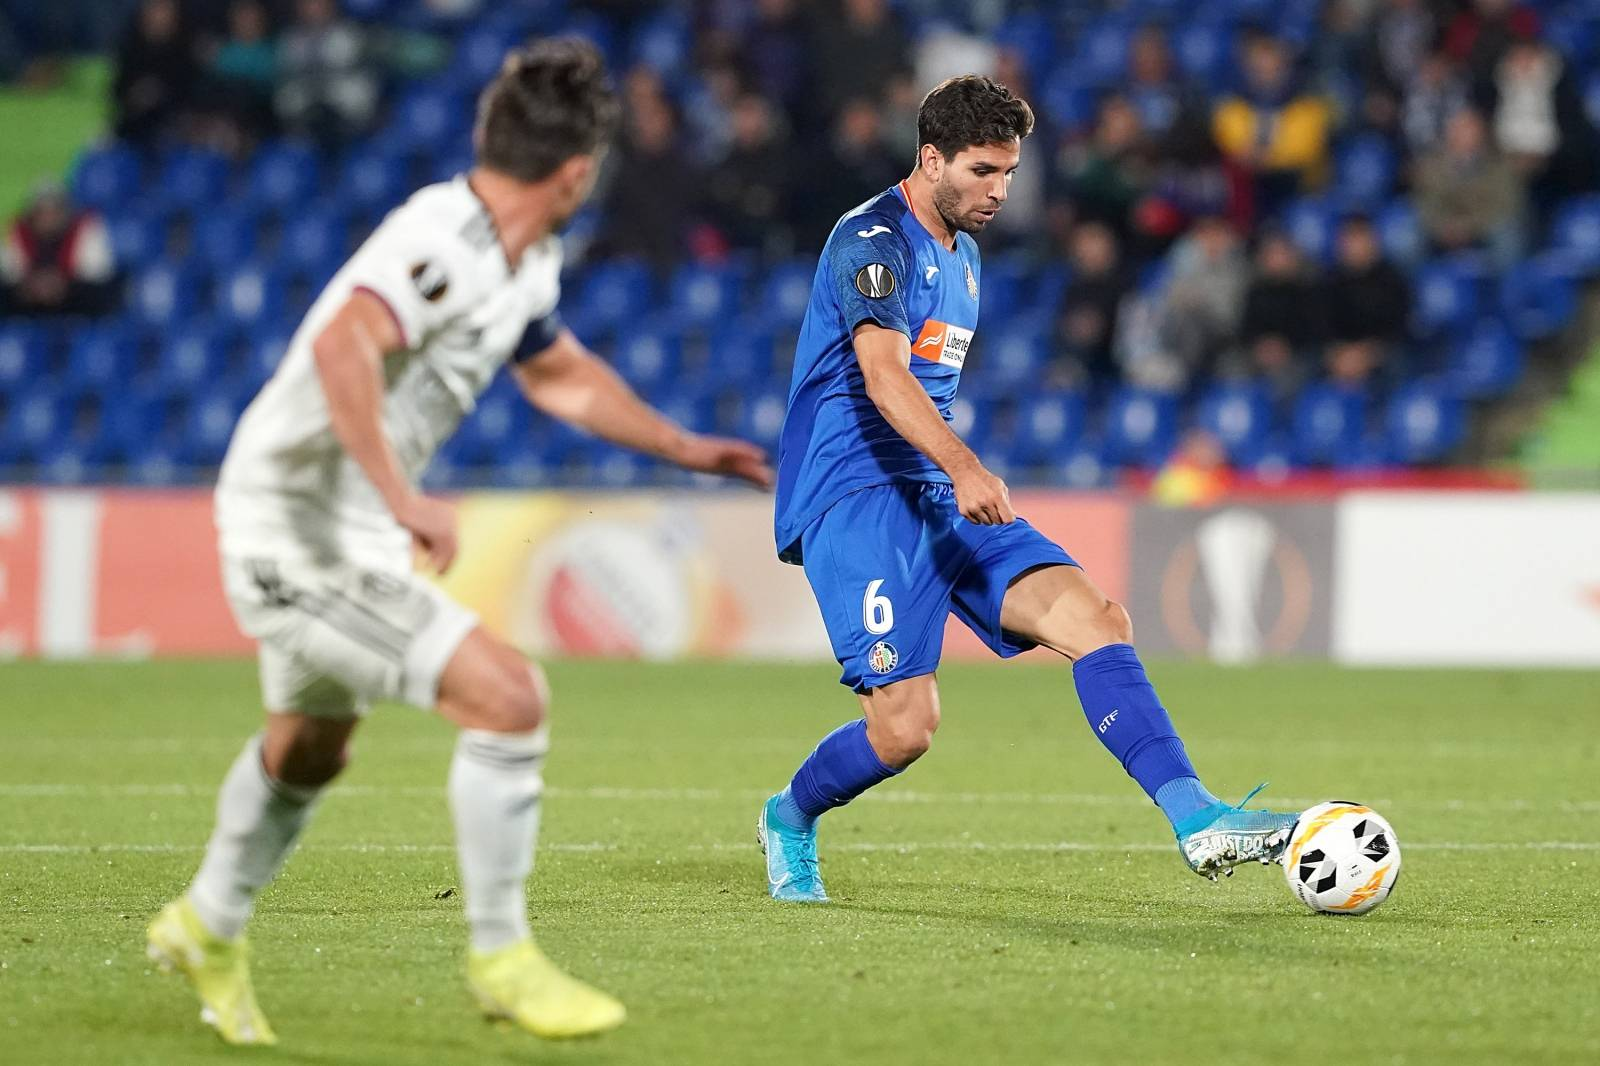 GETAFE CF v FC BASEL 1893. UEFA EUROPA LEAGUE 2019/2020. GROUP STAGE. ROUND 3.